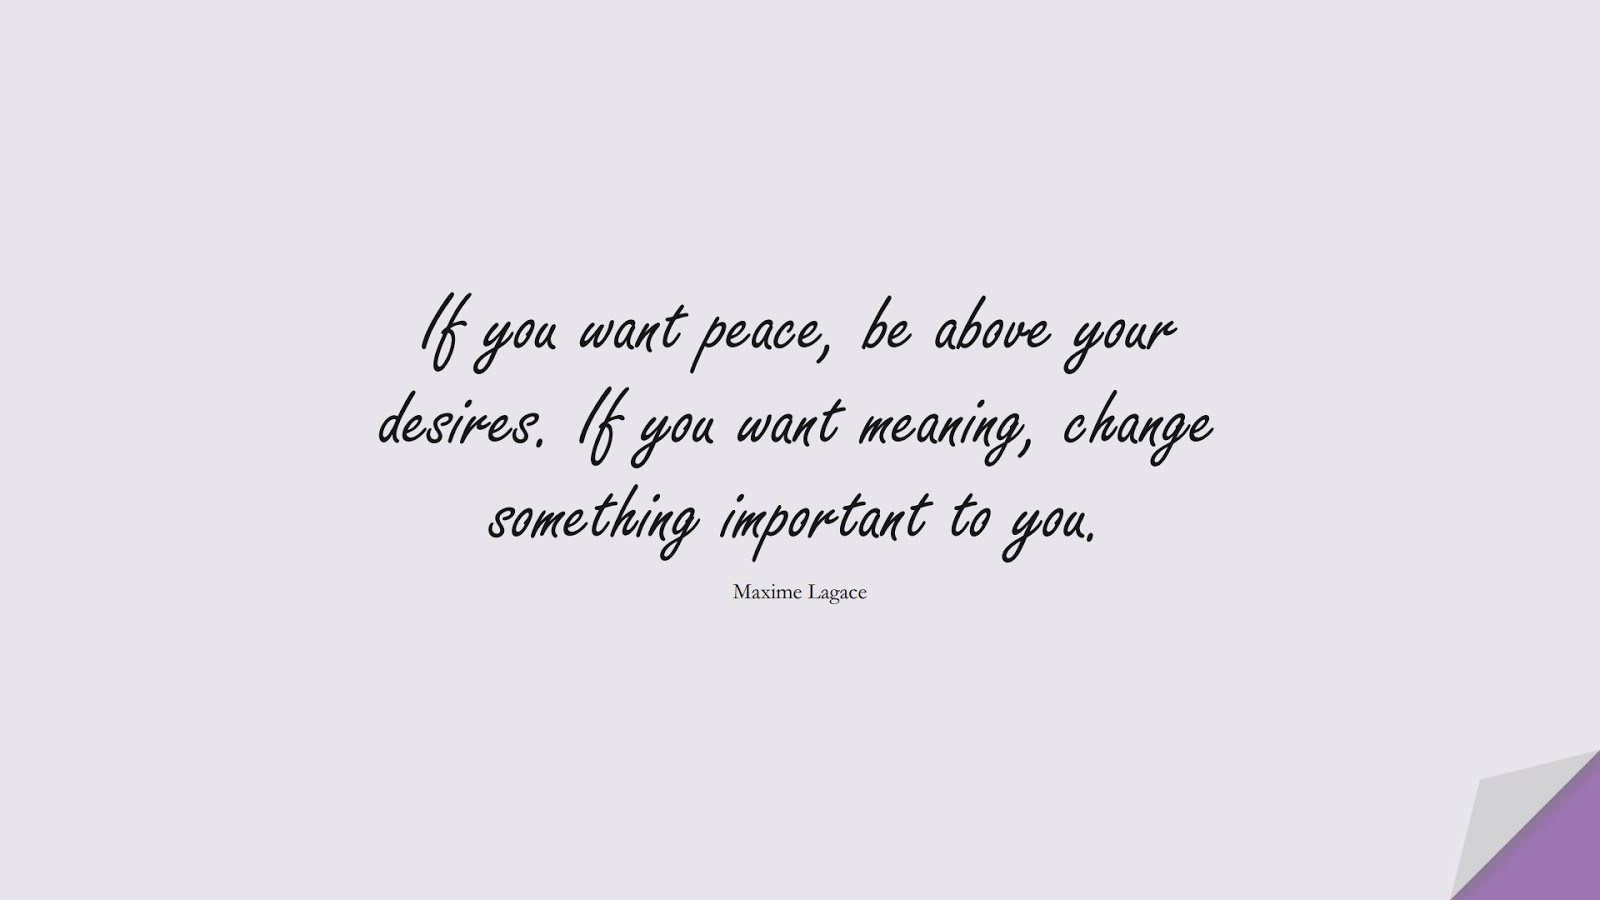 If you want peace, be above your desires. If you want meaning, change something important to you. (Maxime Lagace);  #ChangeQuotes